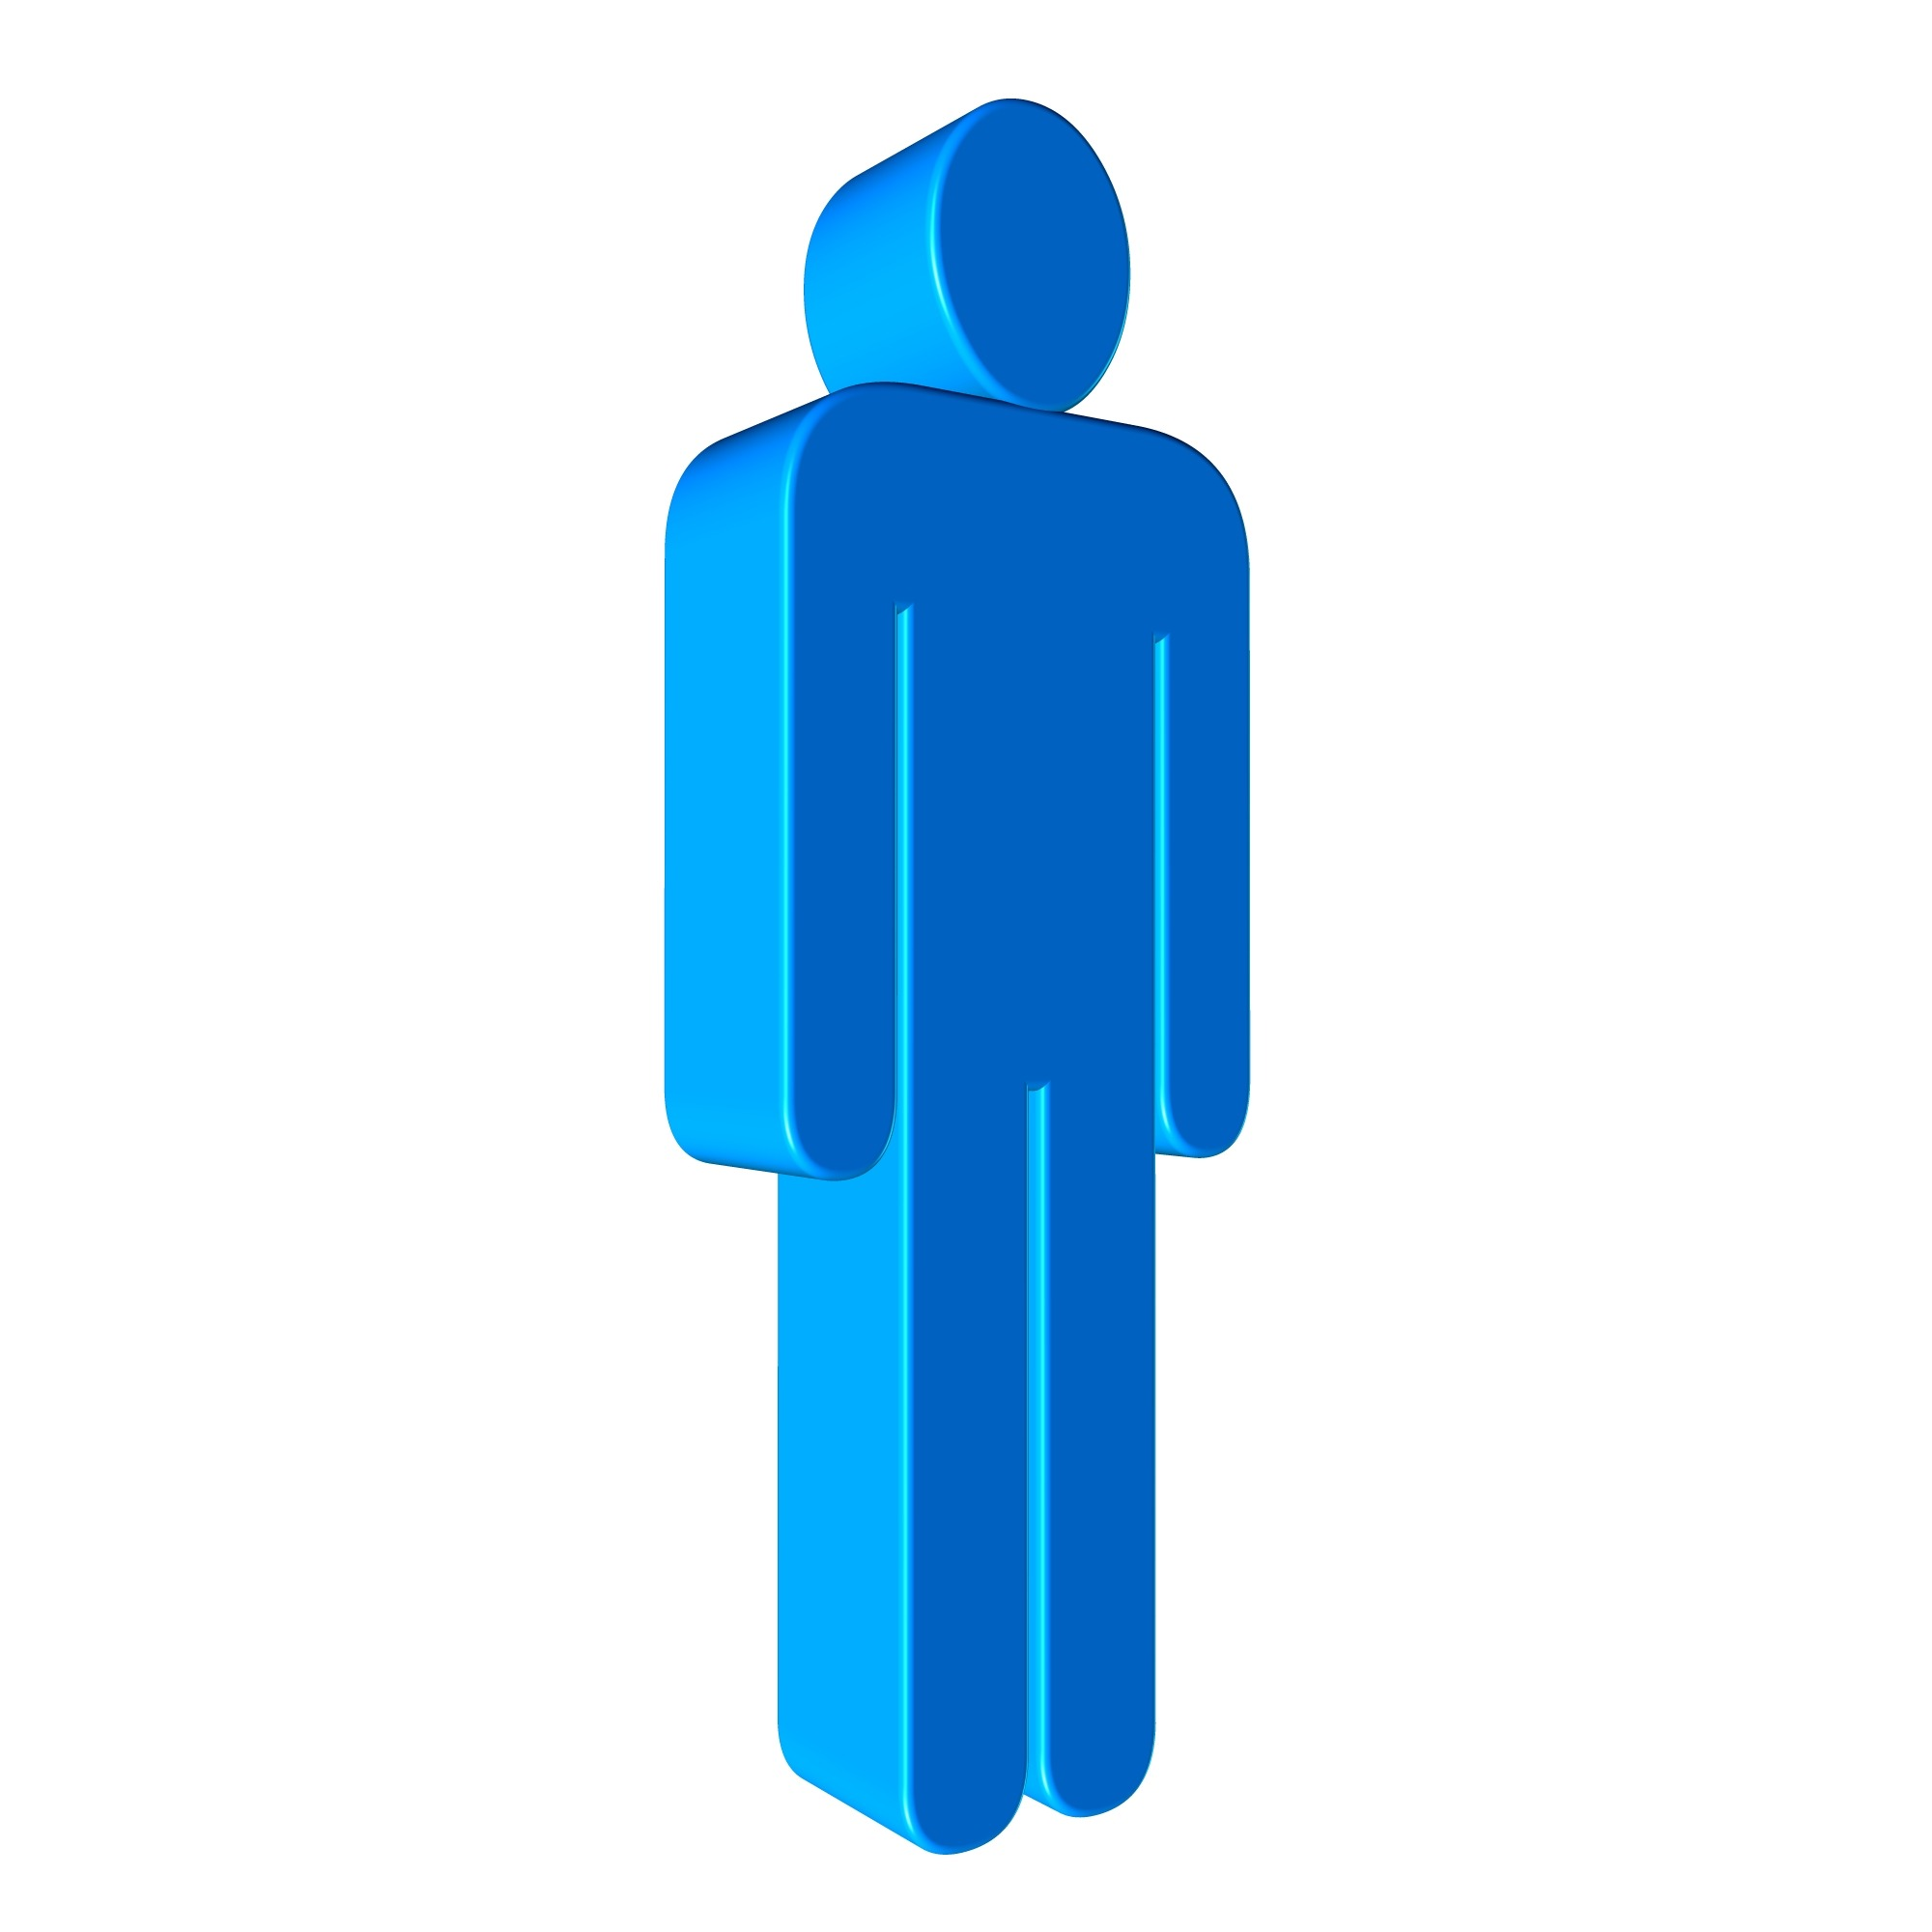 2000x2000 Blue 3d Male Silhouette Free Image